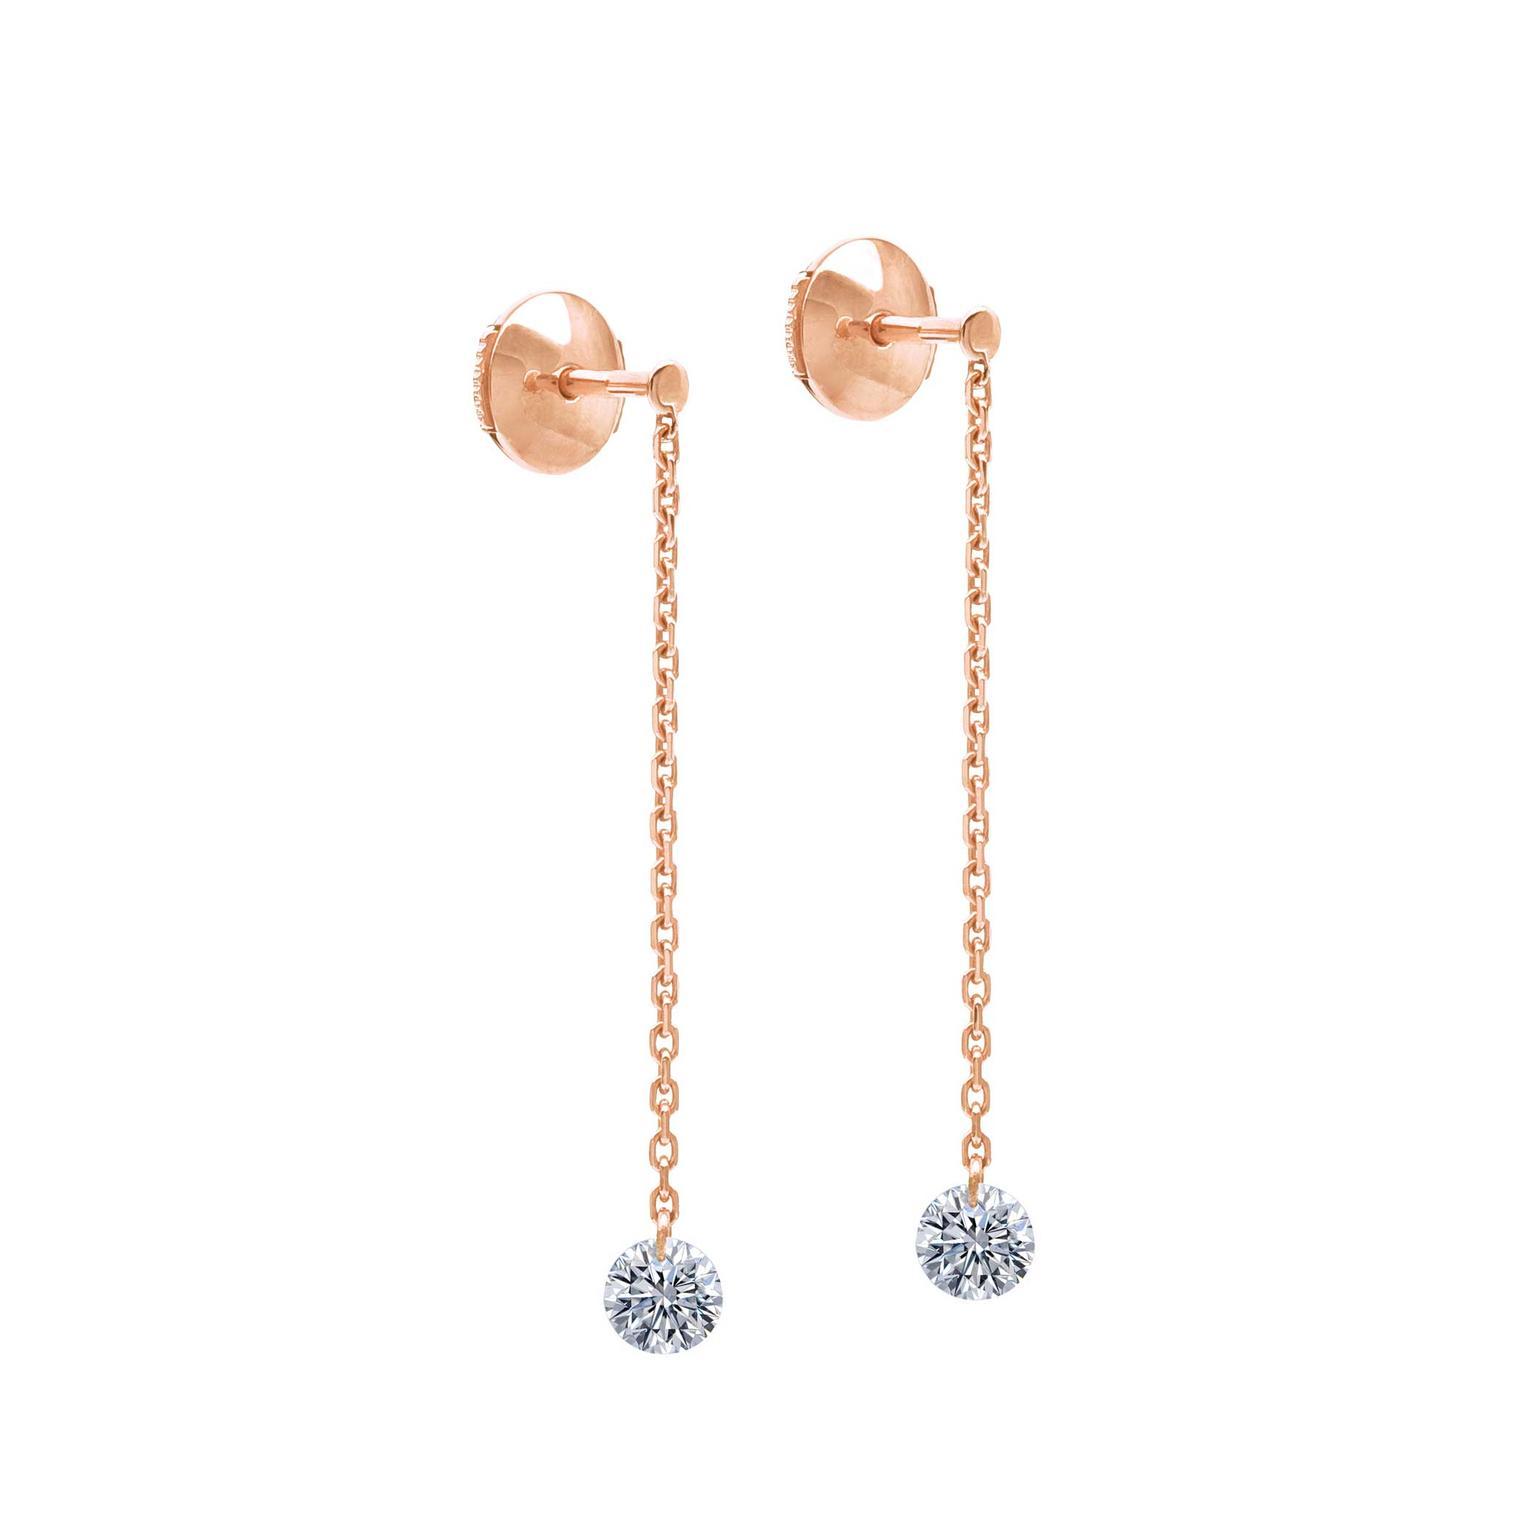 La Brune & La Blonde 360° pendant earrings with brilliant-cut diamonds in gold